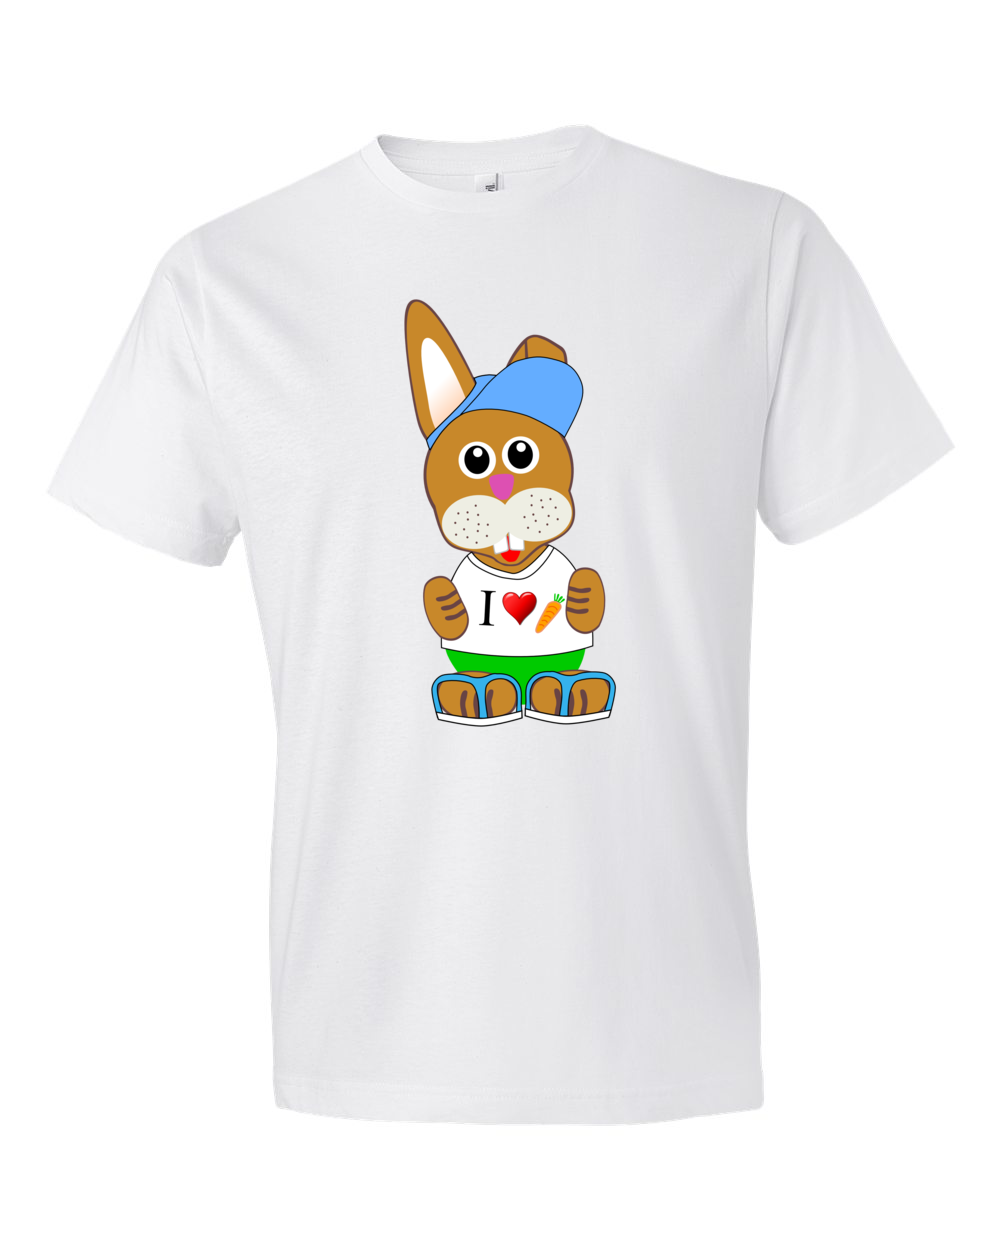 Bunny-Lightweight-Fashion-Short-Sleeve-T-Shirt-by-iTEE.com